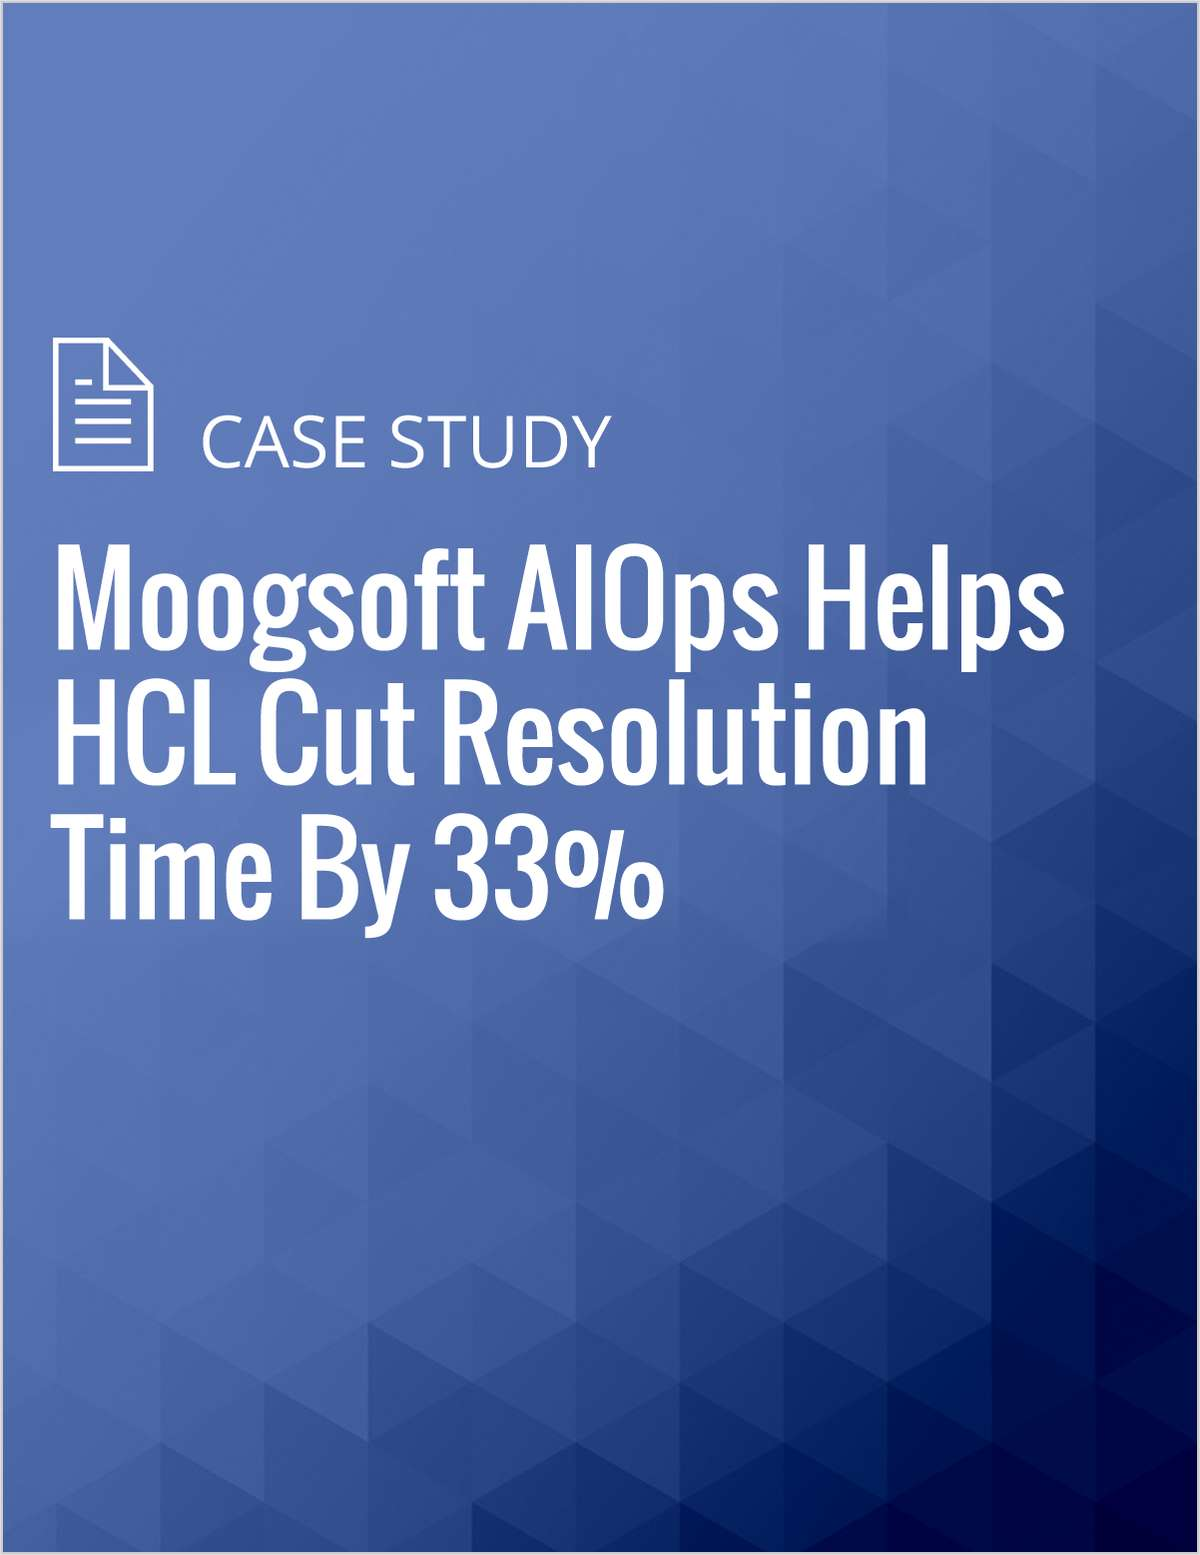 Moogsoft AIOps Helps HCL Cut Resolution Time By 33%